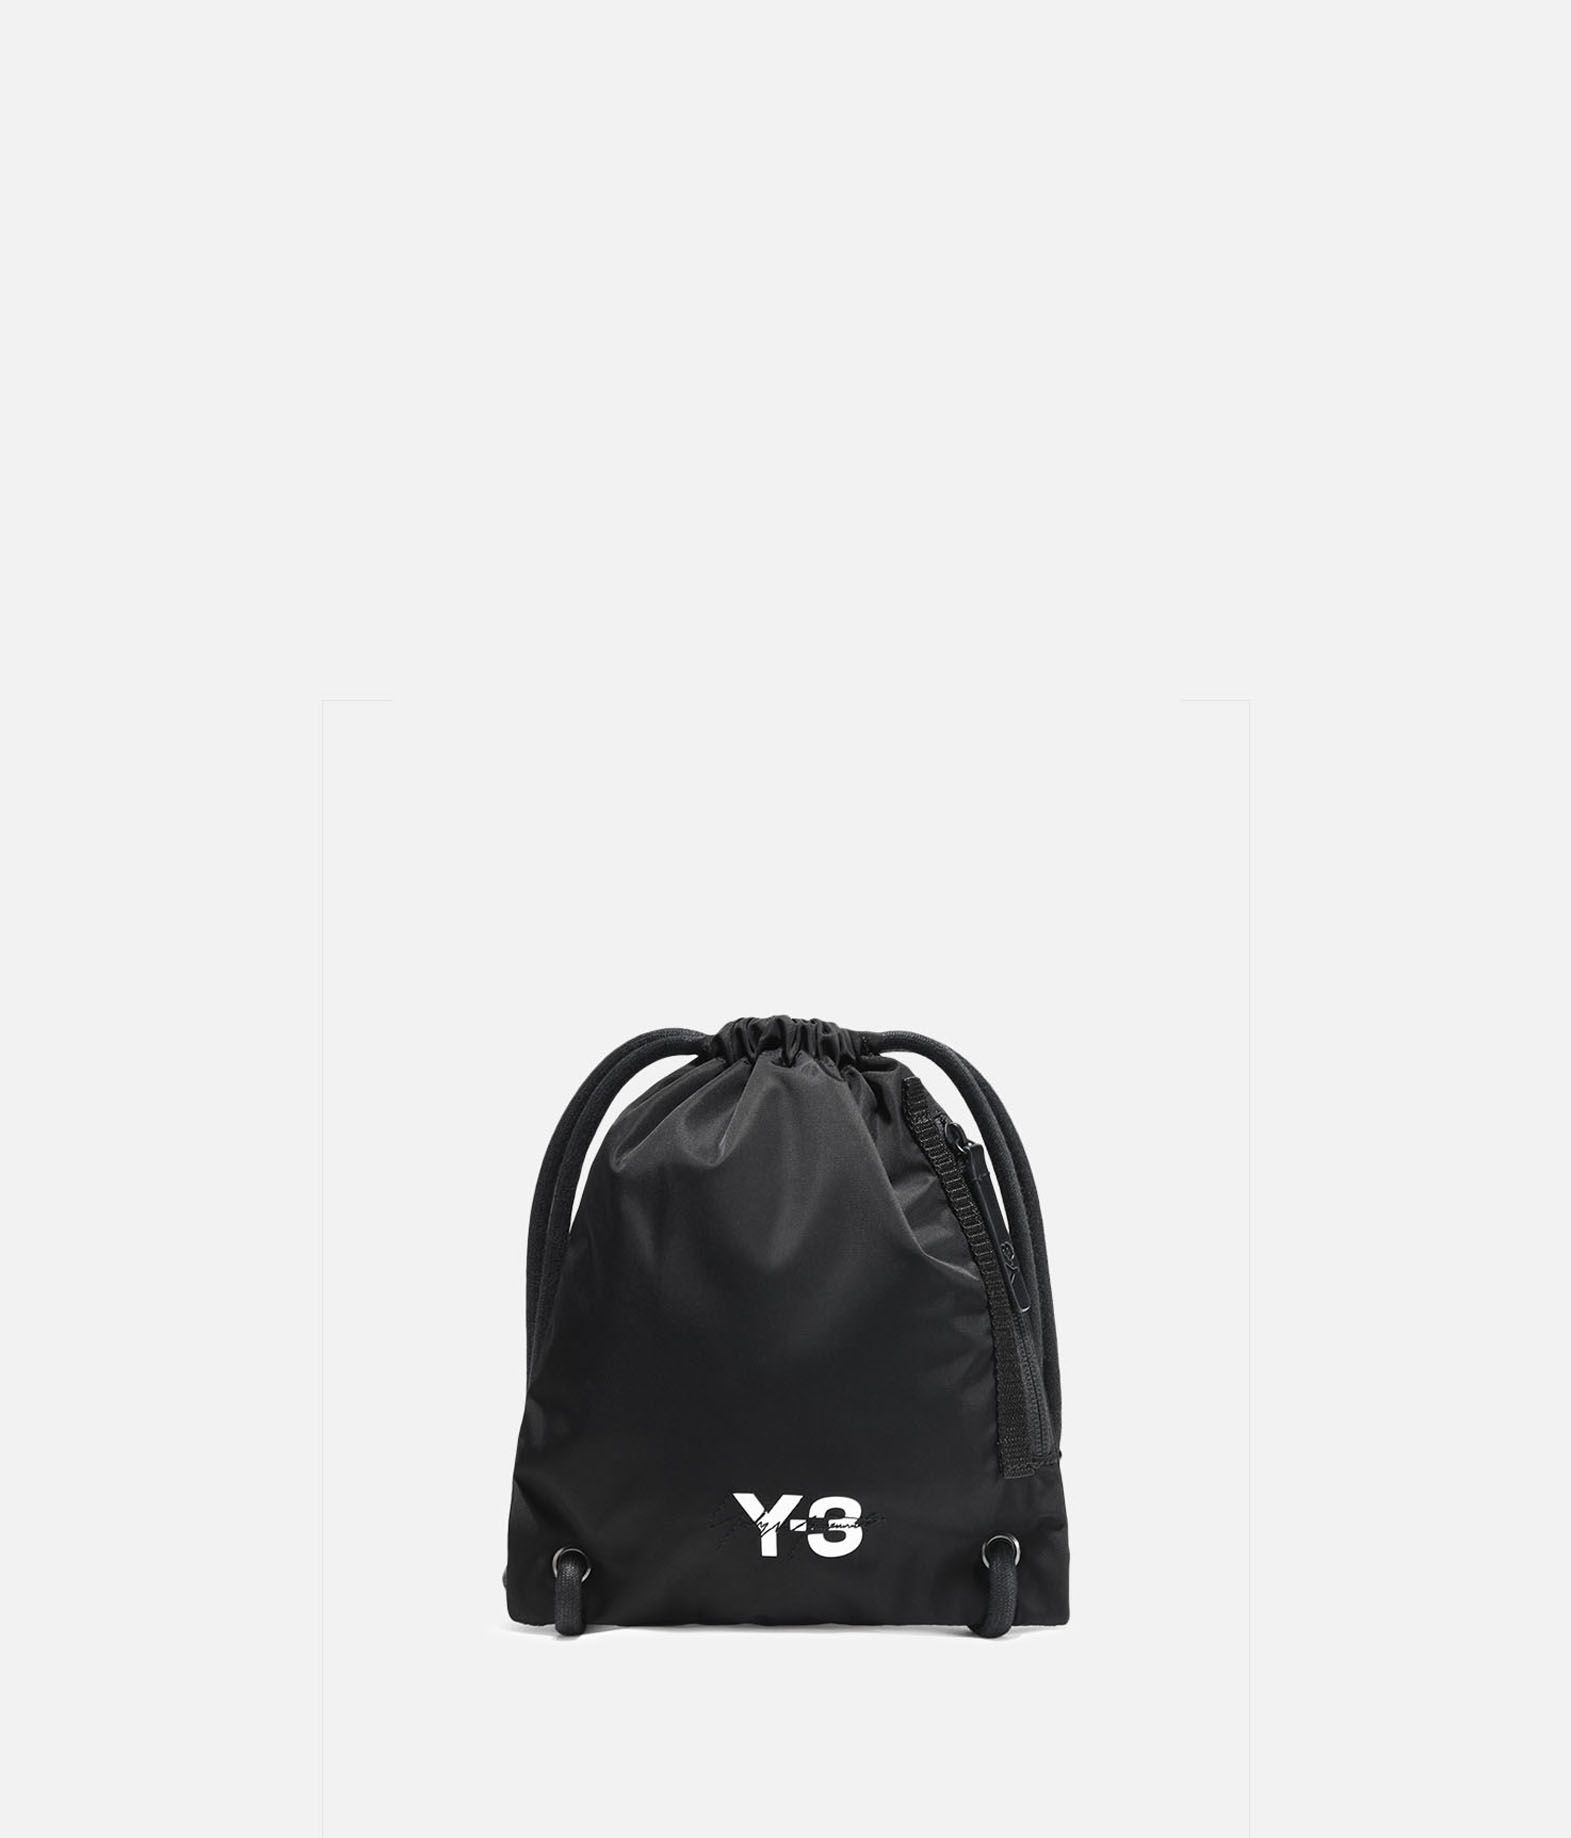 b0a257772df6 ... Y-3 Y-3 Mini Gym Bag Gym bag E d ...